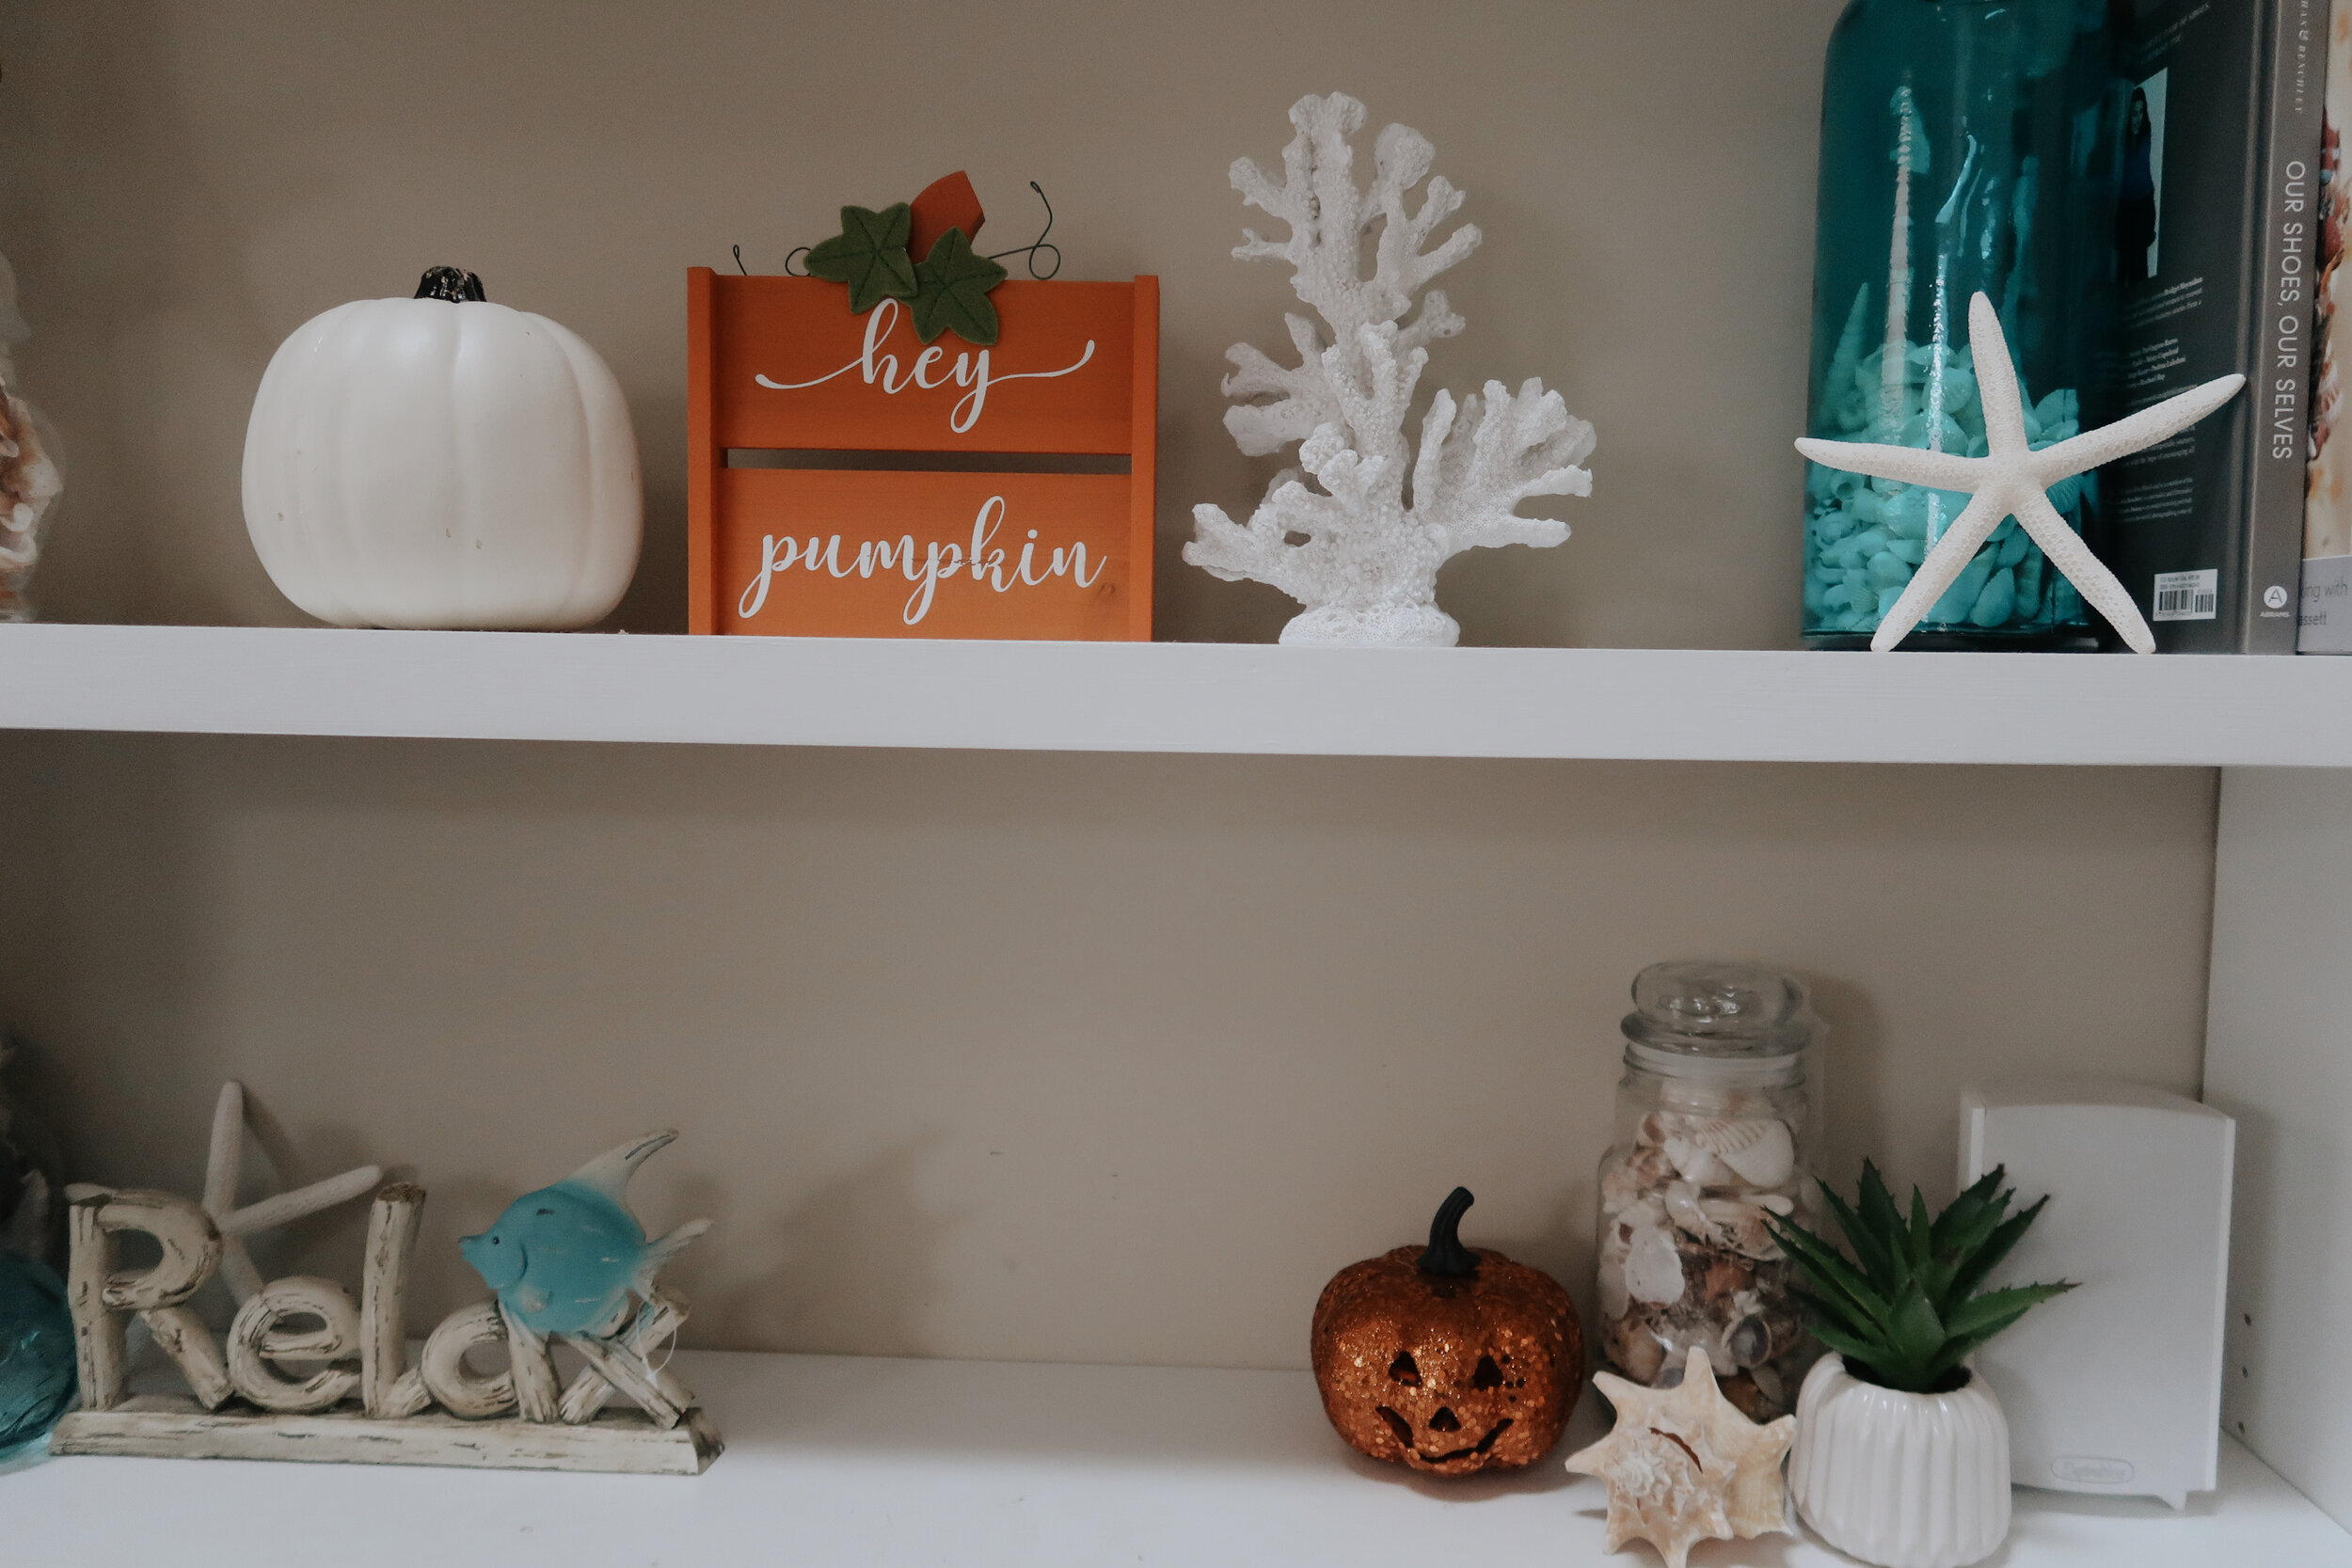 SHOP OTHER AFFORDABLE HOME DECOR -